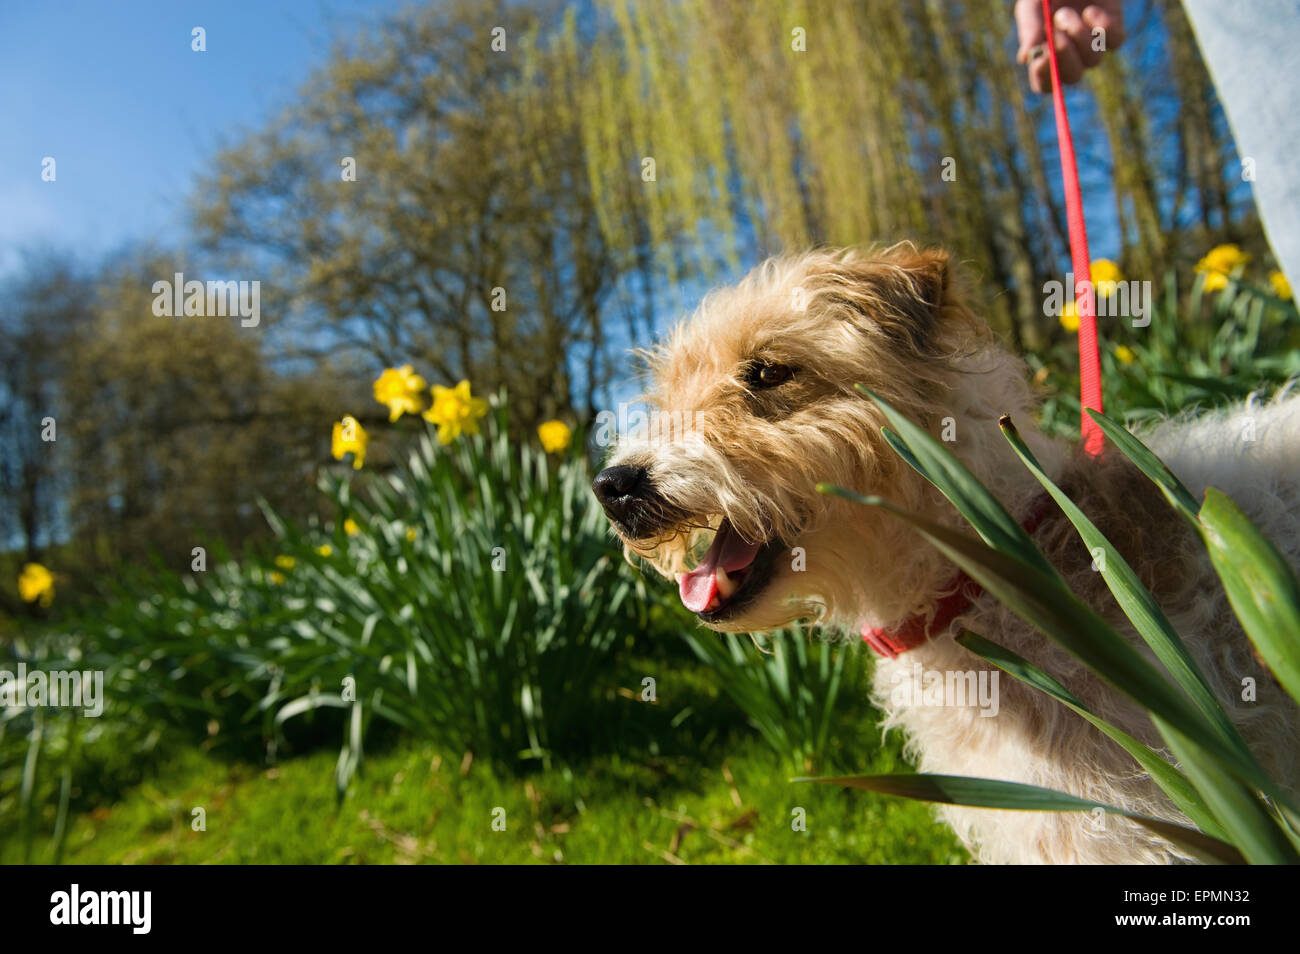 A woman and a small dog in a garden with trees in fresh leaf, and daffodils flowering. - Stock Image